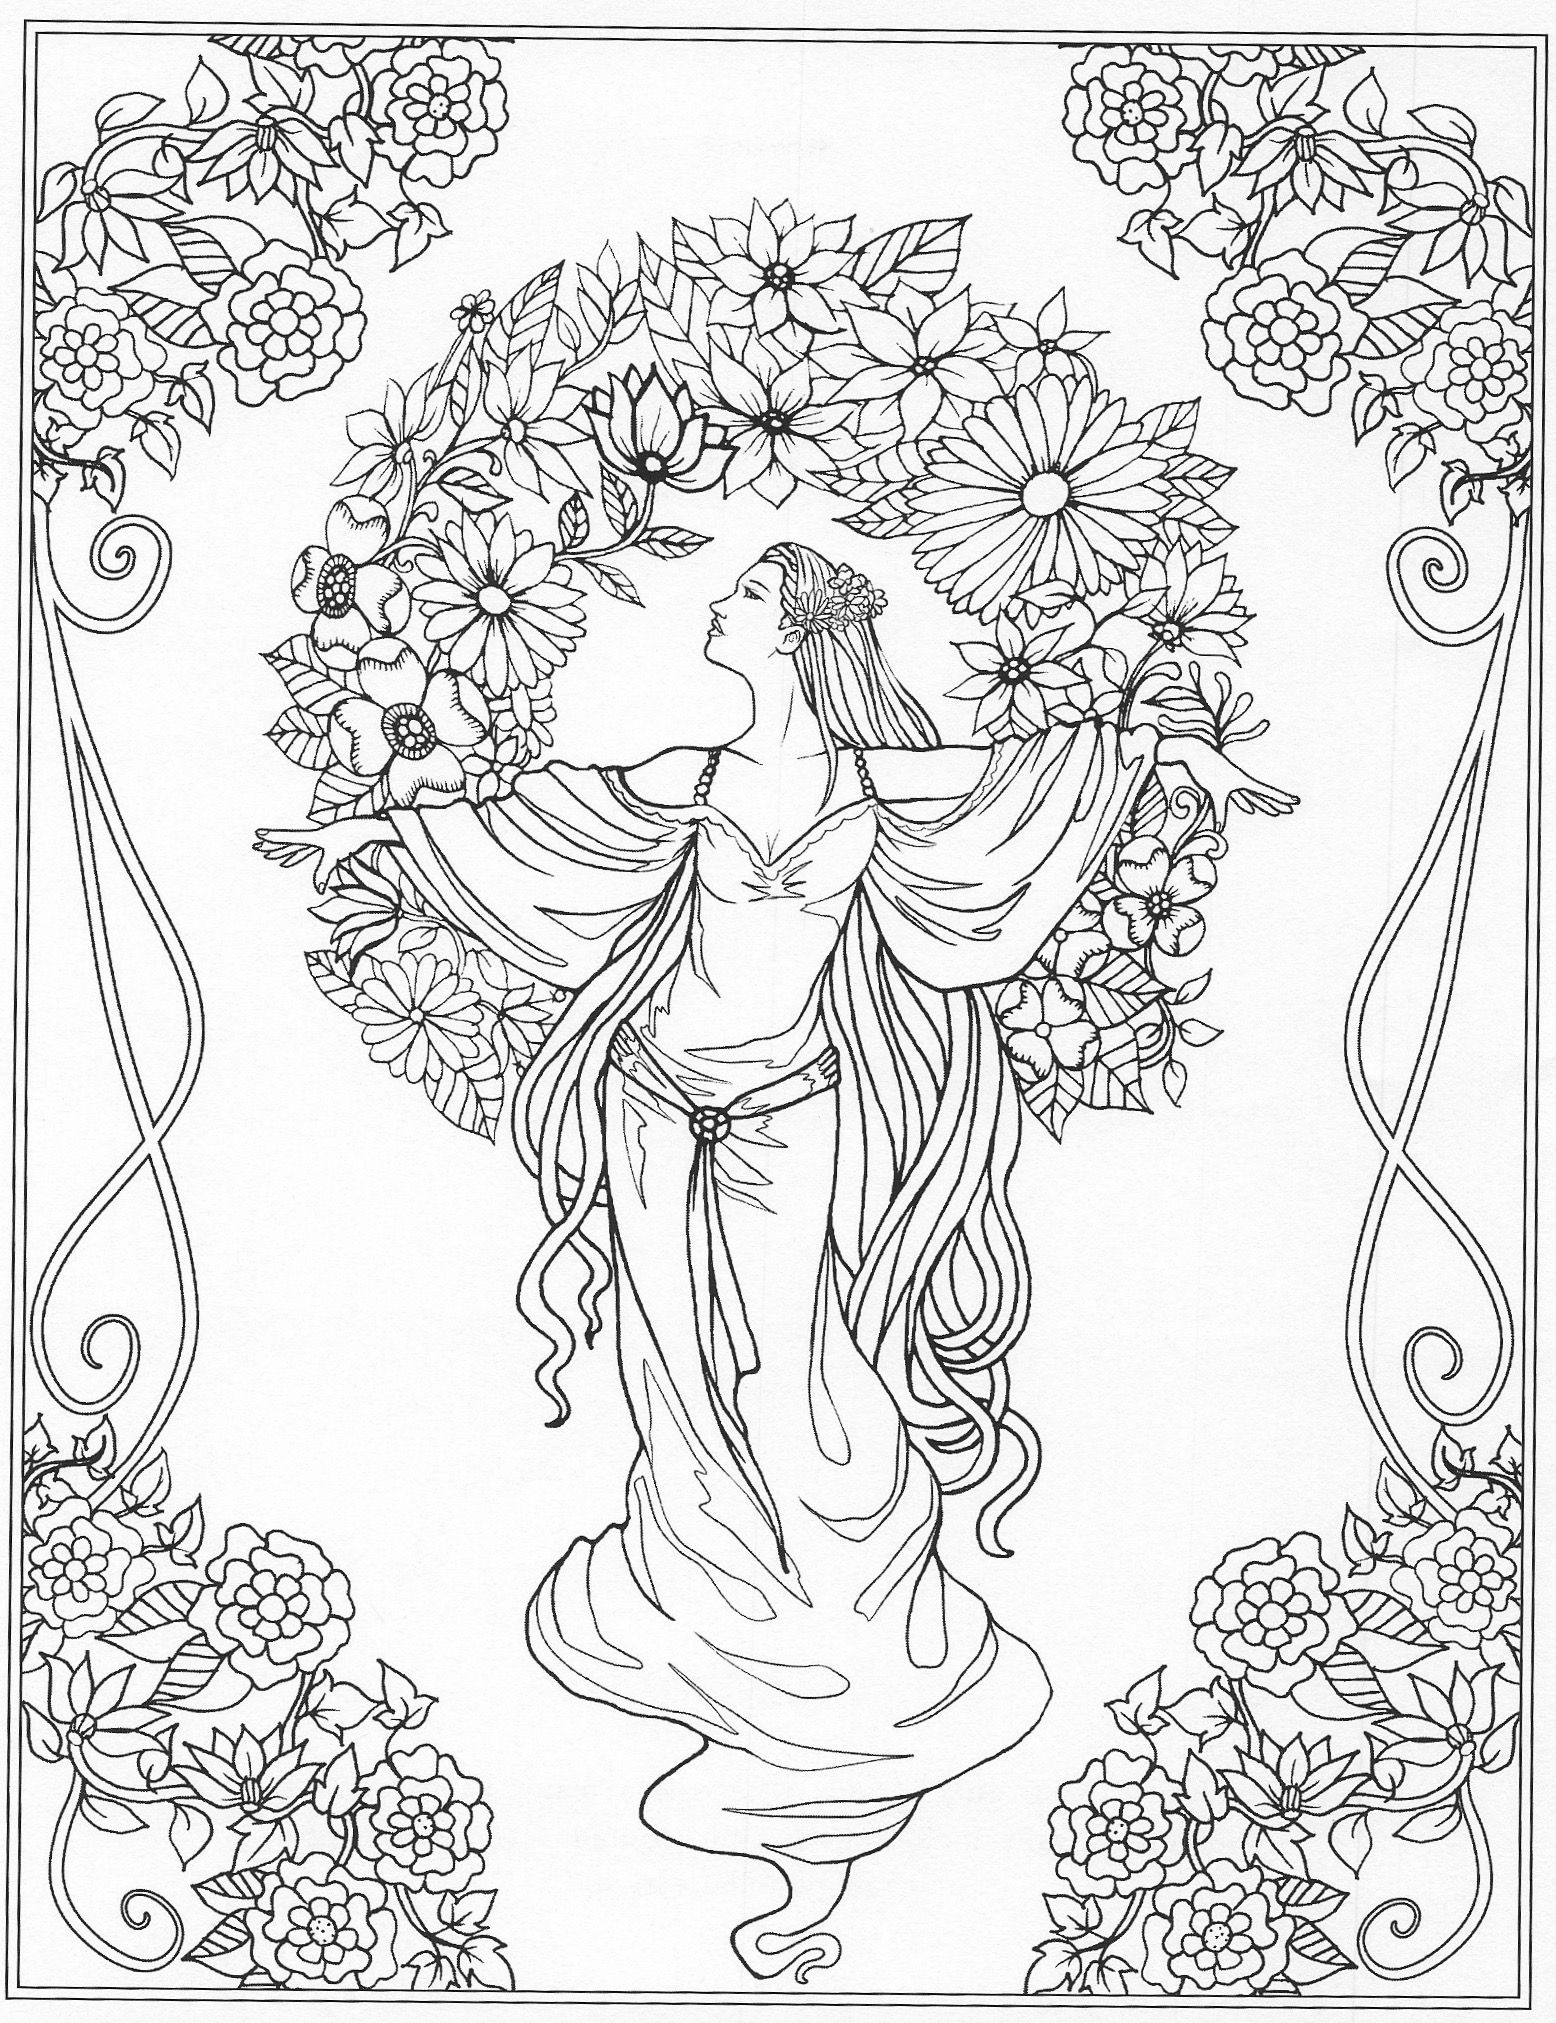 Lady Shiva Coloring Page - Free DC Super Hero Girls Coloring Pages :  ColoringPages101.com | 2023x1556